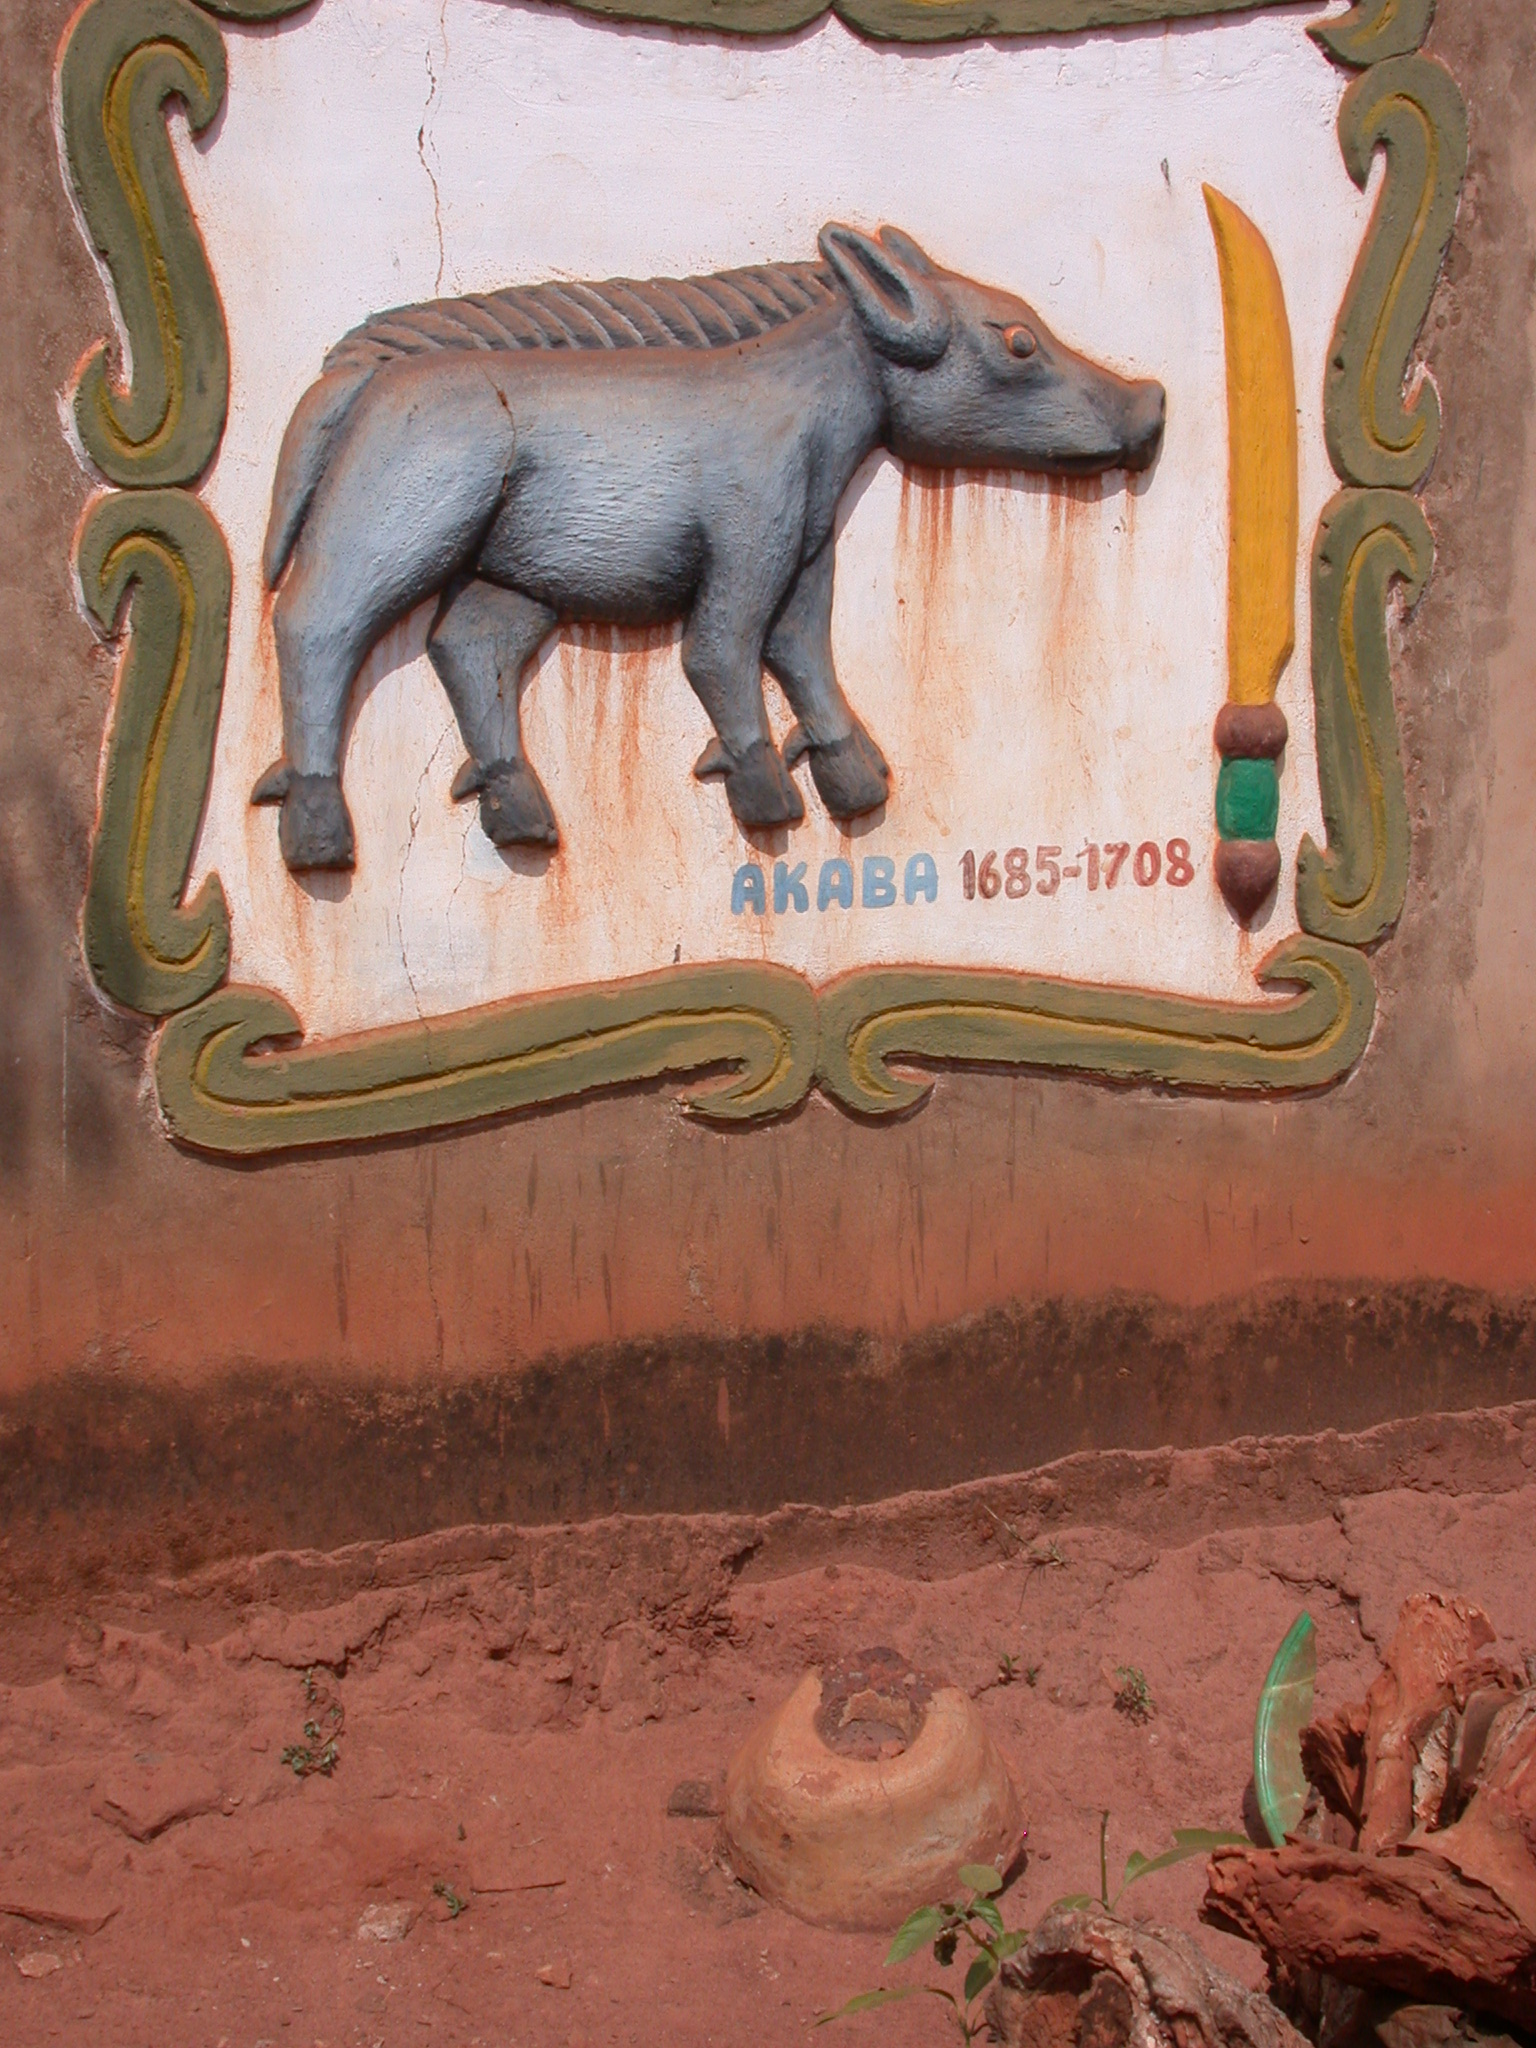 Akaba Symbol on Compound Wall, Houemou Agonglo Temple, Abomey, Benin